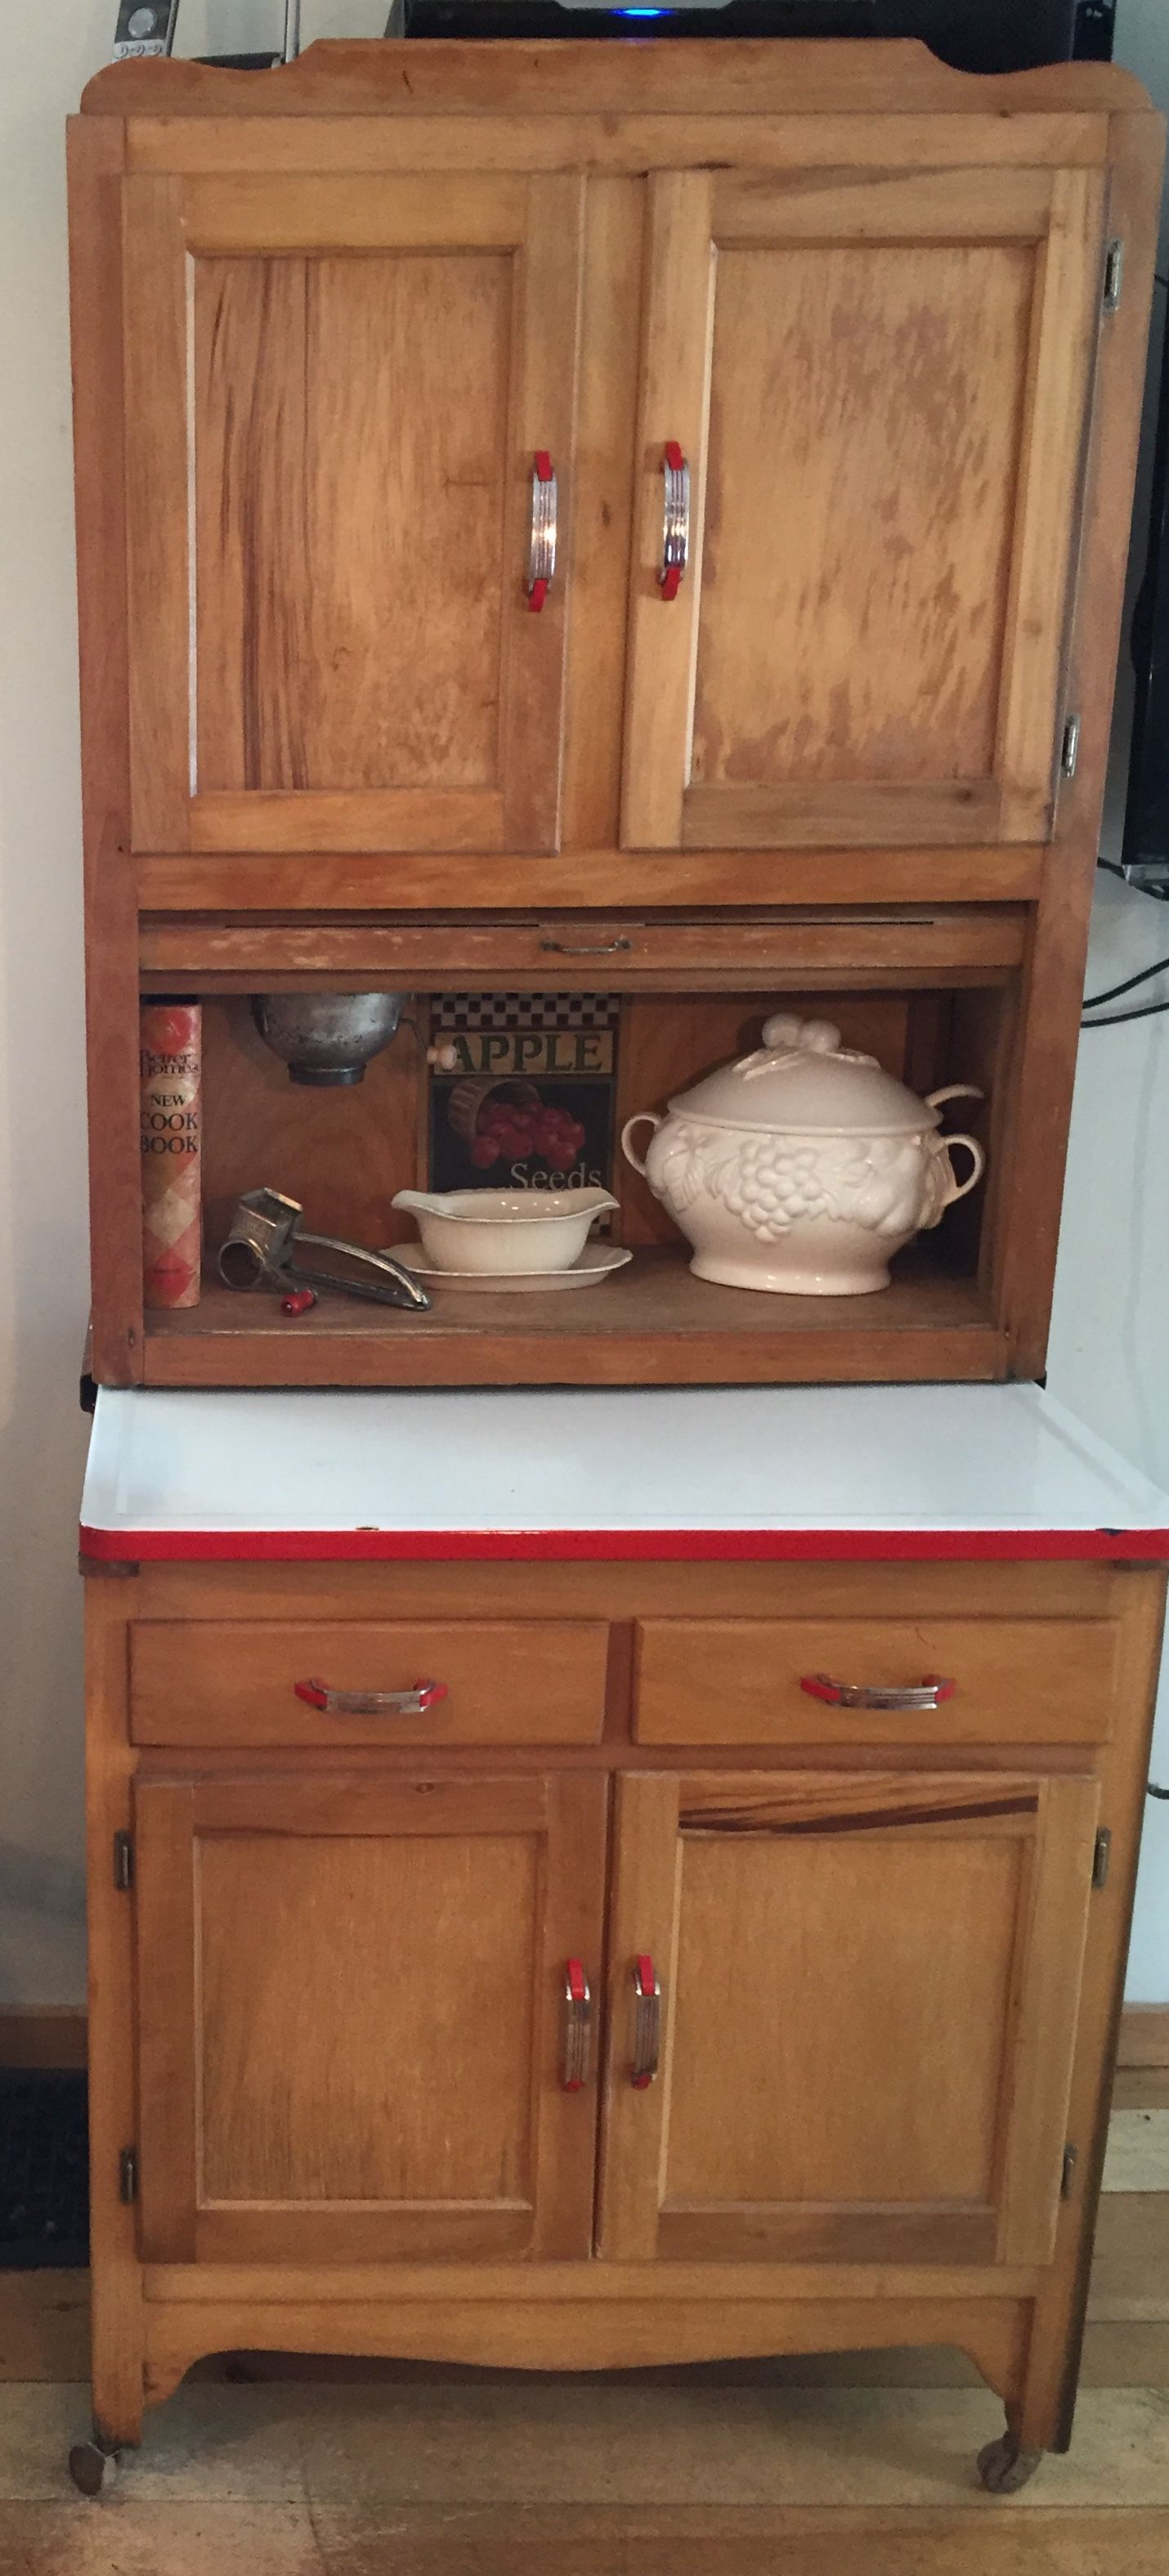 Apartment Size Hoosier Cabinet 1940 S With Red And Chrome Handles Hoosier Cabinet Chrome Handles Cabinet